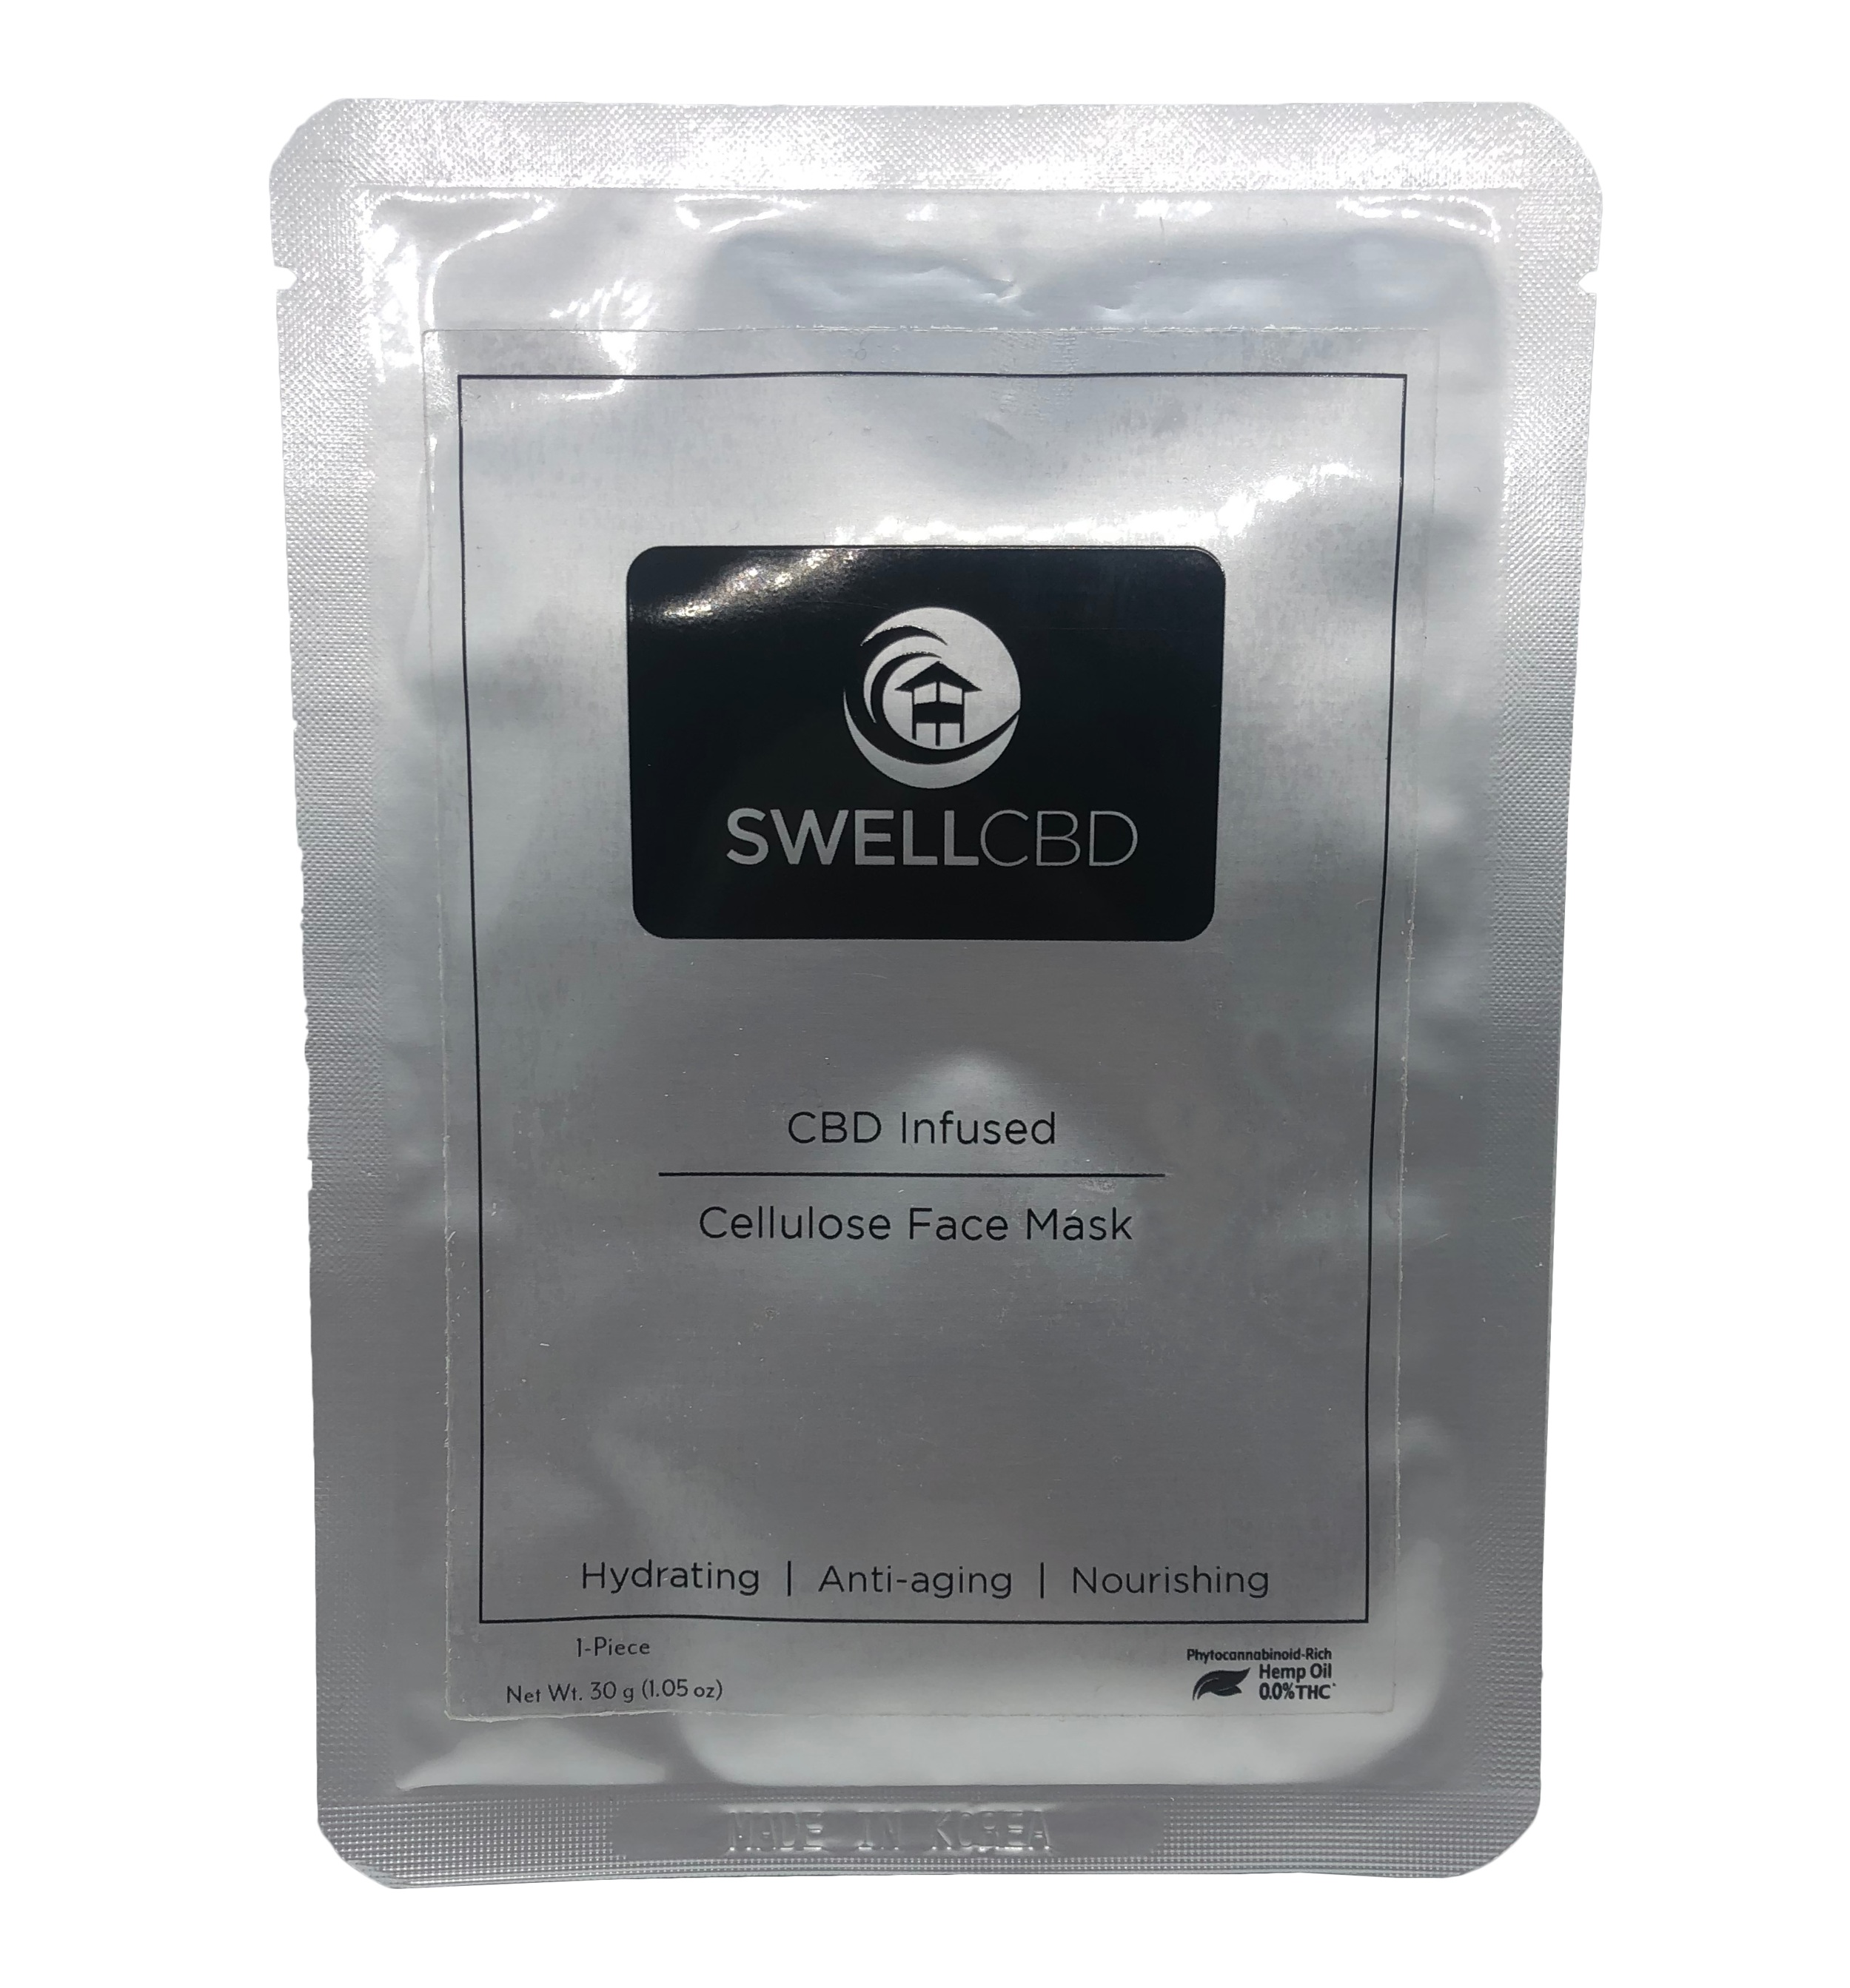 Cellulose CBD Face Mask - Swell CBD is excited to announce the release of one of the first and only CBD infused Cellulose Face mask on the market.Advanced Phytocannabinoid-Rich Hemp Oil Cellulose Face Mask System:-Anti-Aging-Reduces Signs of Fatigue-Anti-Inflammatory-Homeostasis-Promotes Hydration-Fights Free Radicals-Nourshing PropertiesZero 0.0% THCUse The Code 'Greenswell' To Get 10% Off